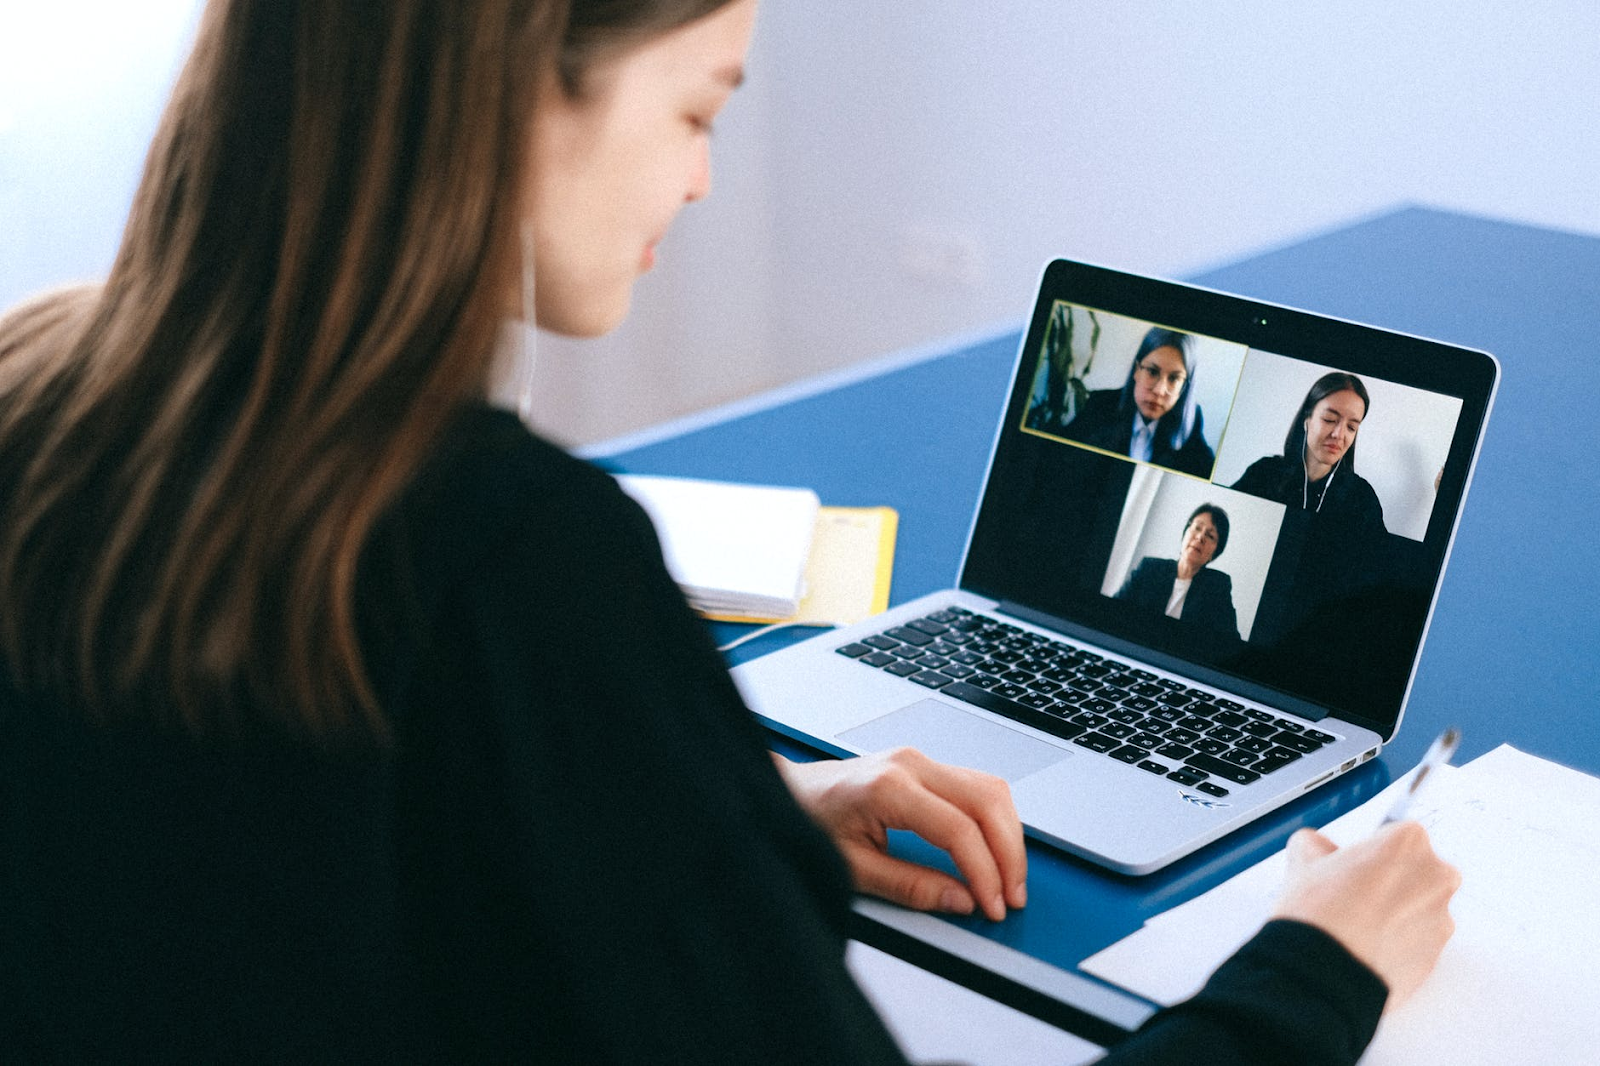 Using skype or teams is a valuable way to communicate with team members